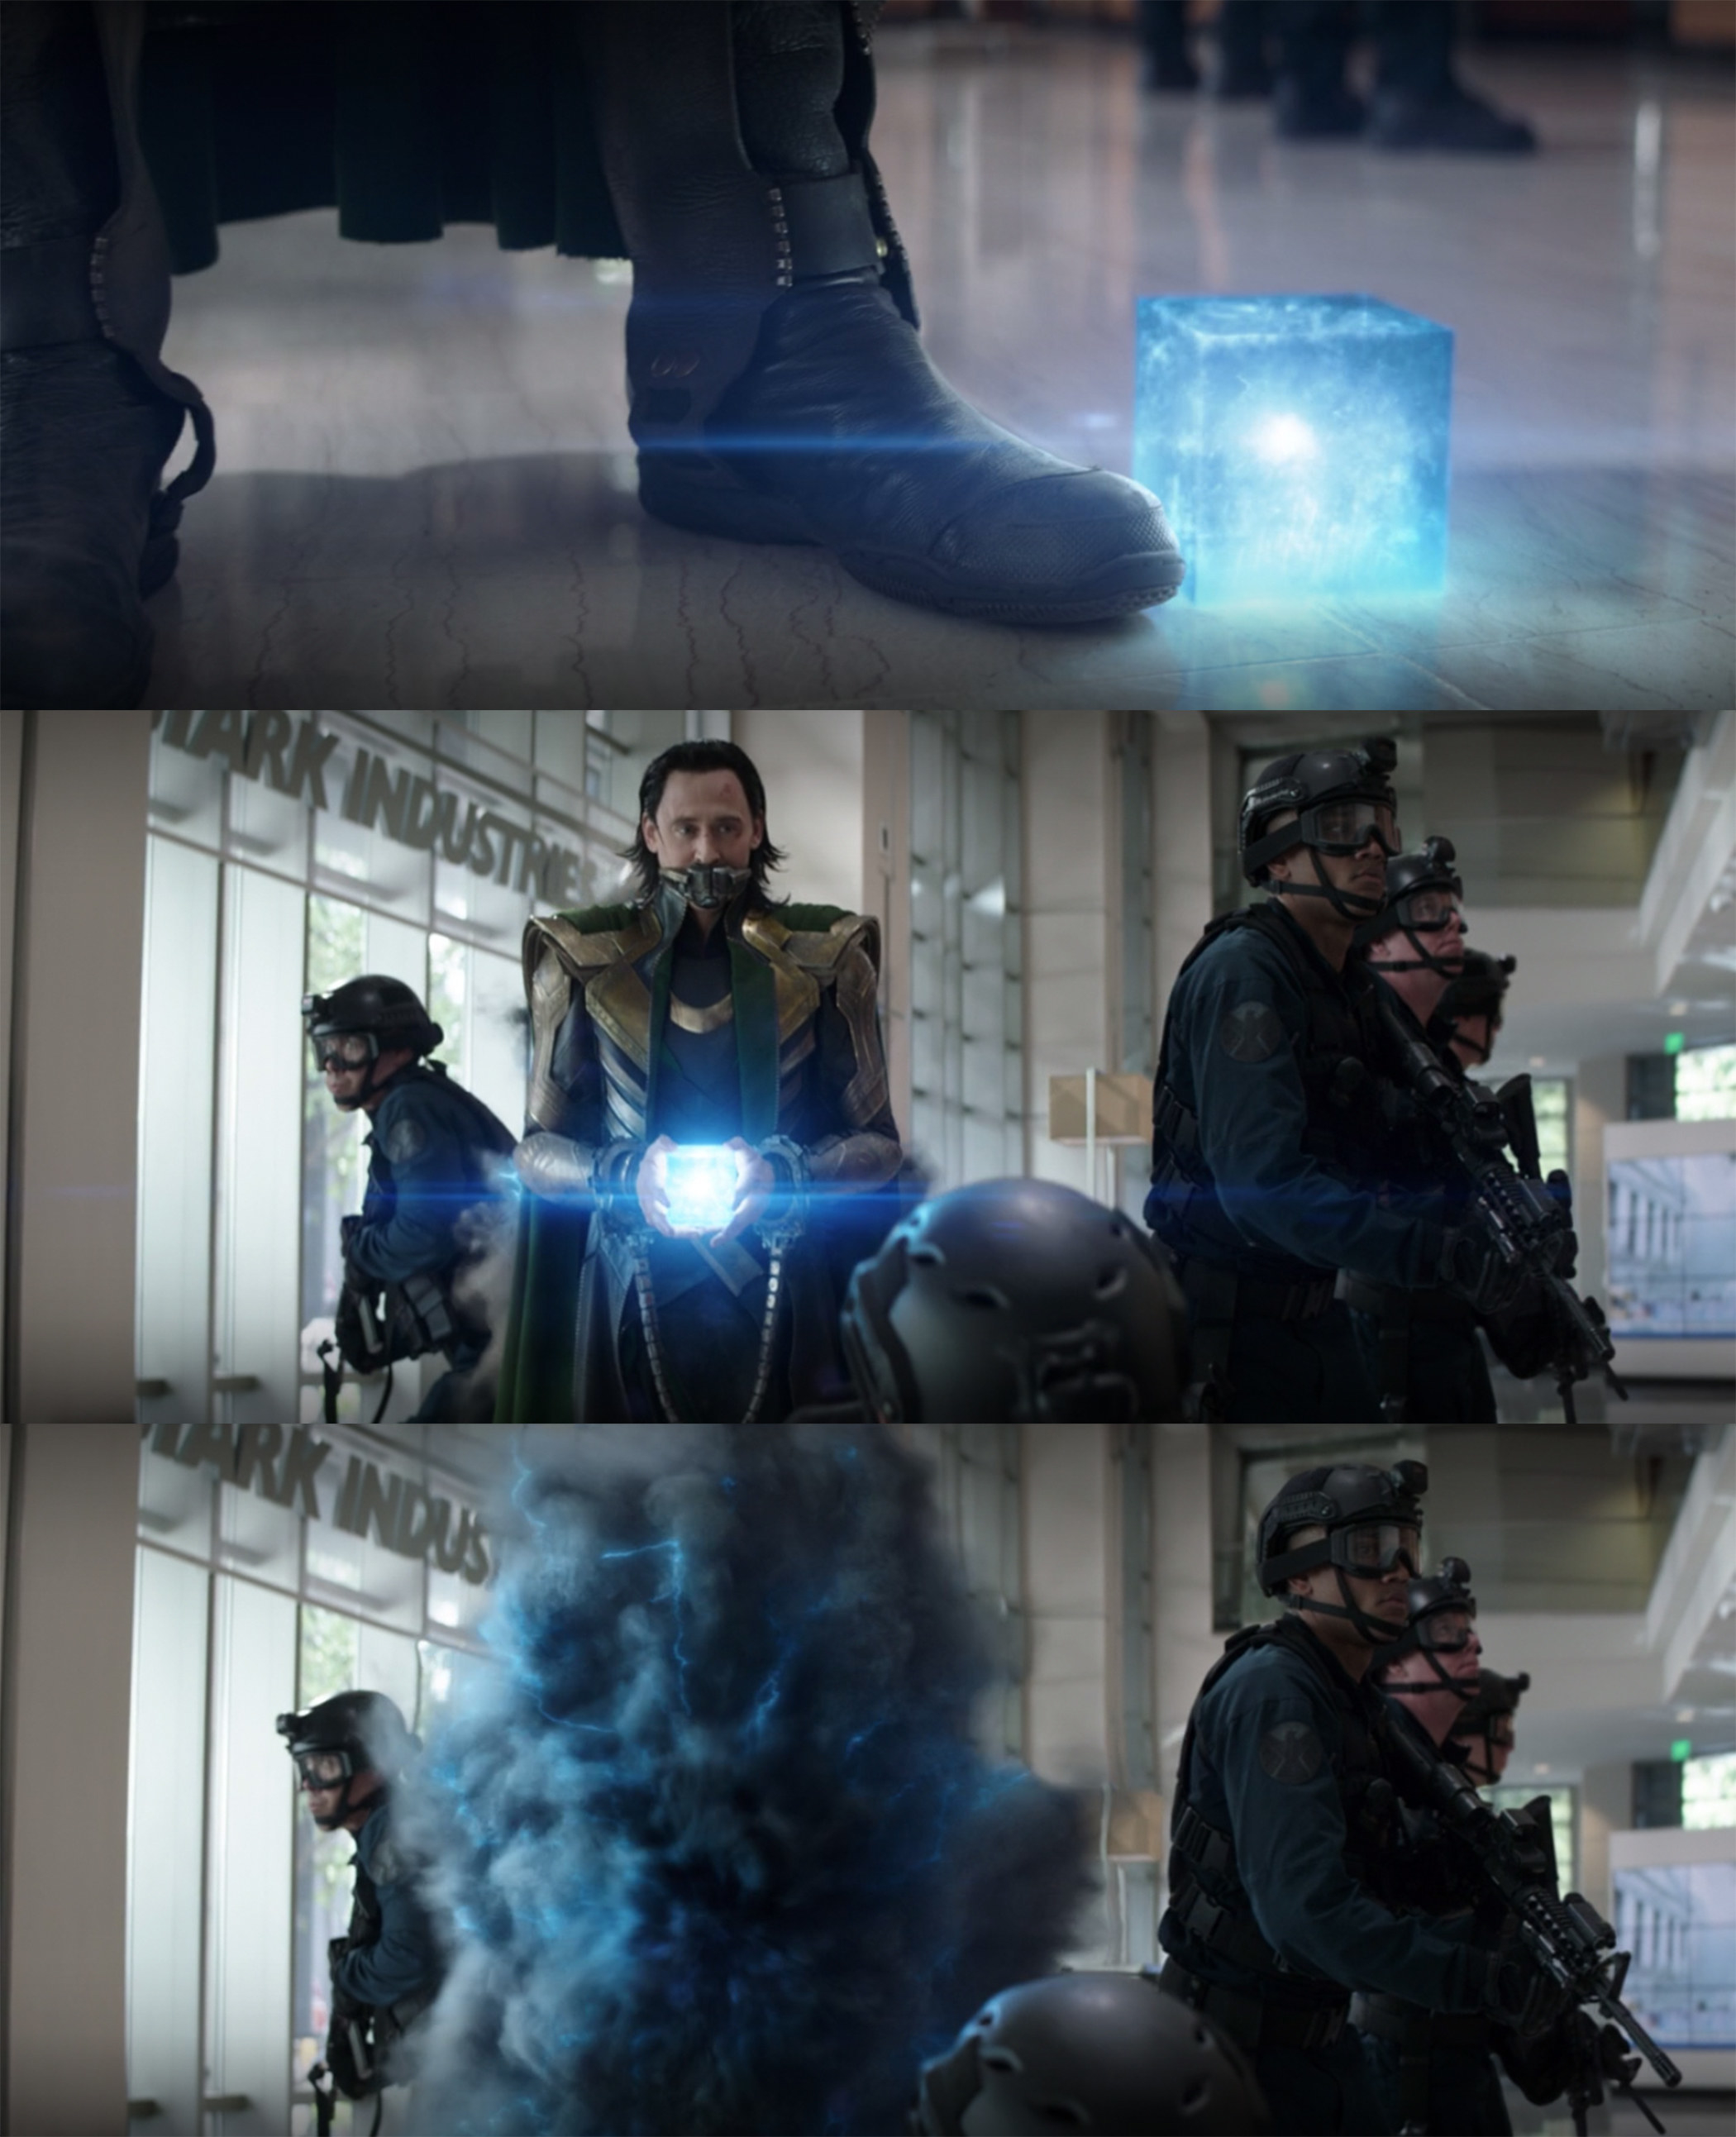 Loki simply picked up the fallen Tesseract and vanished